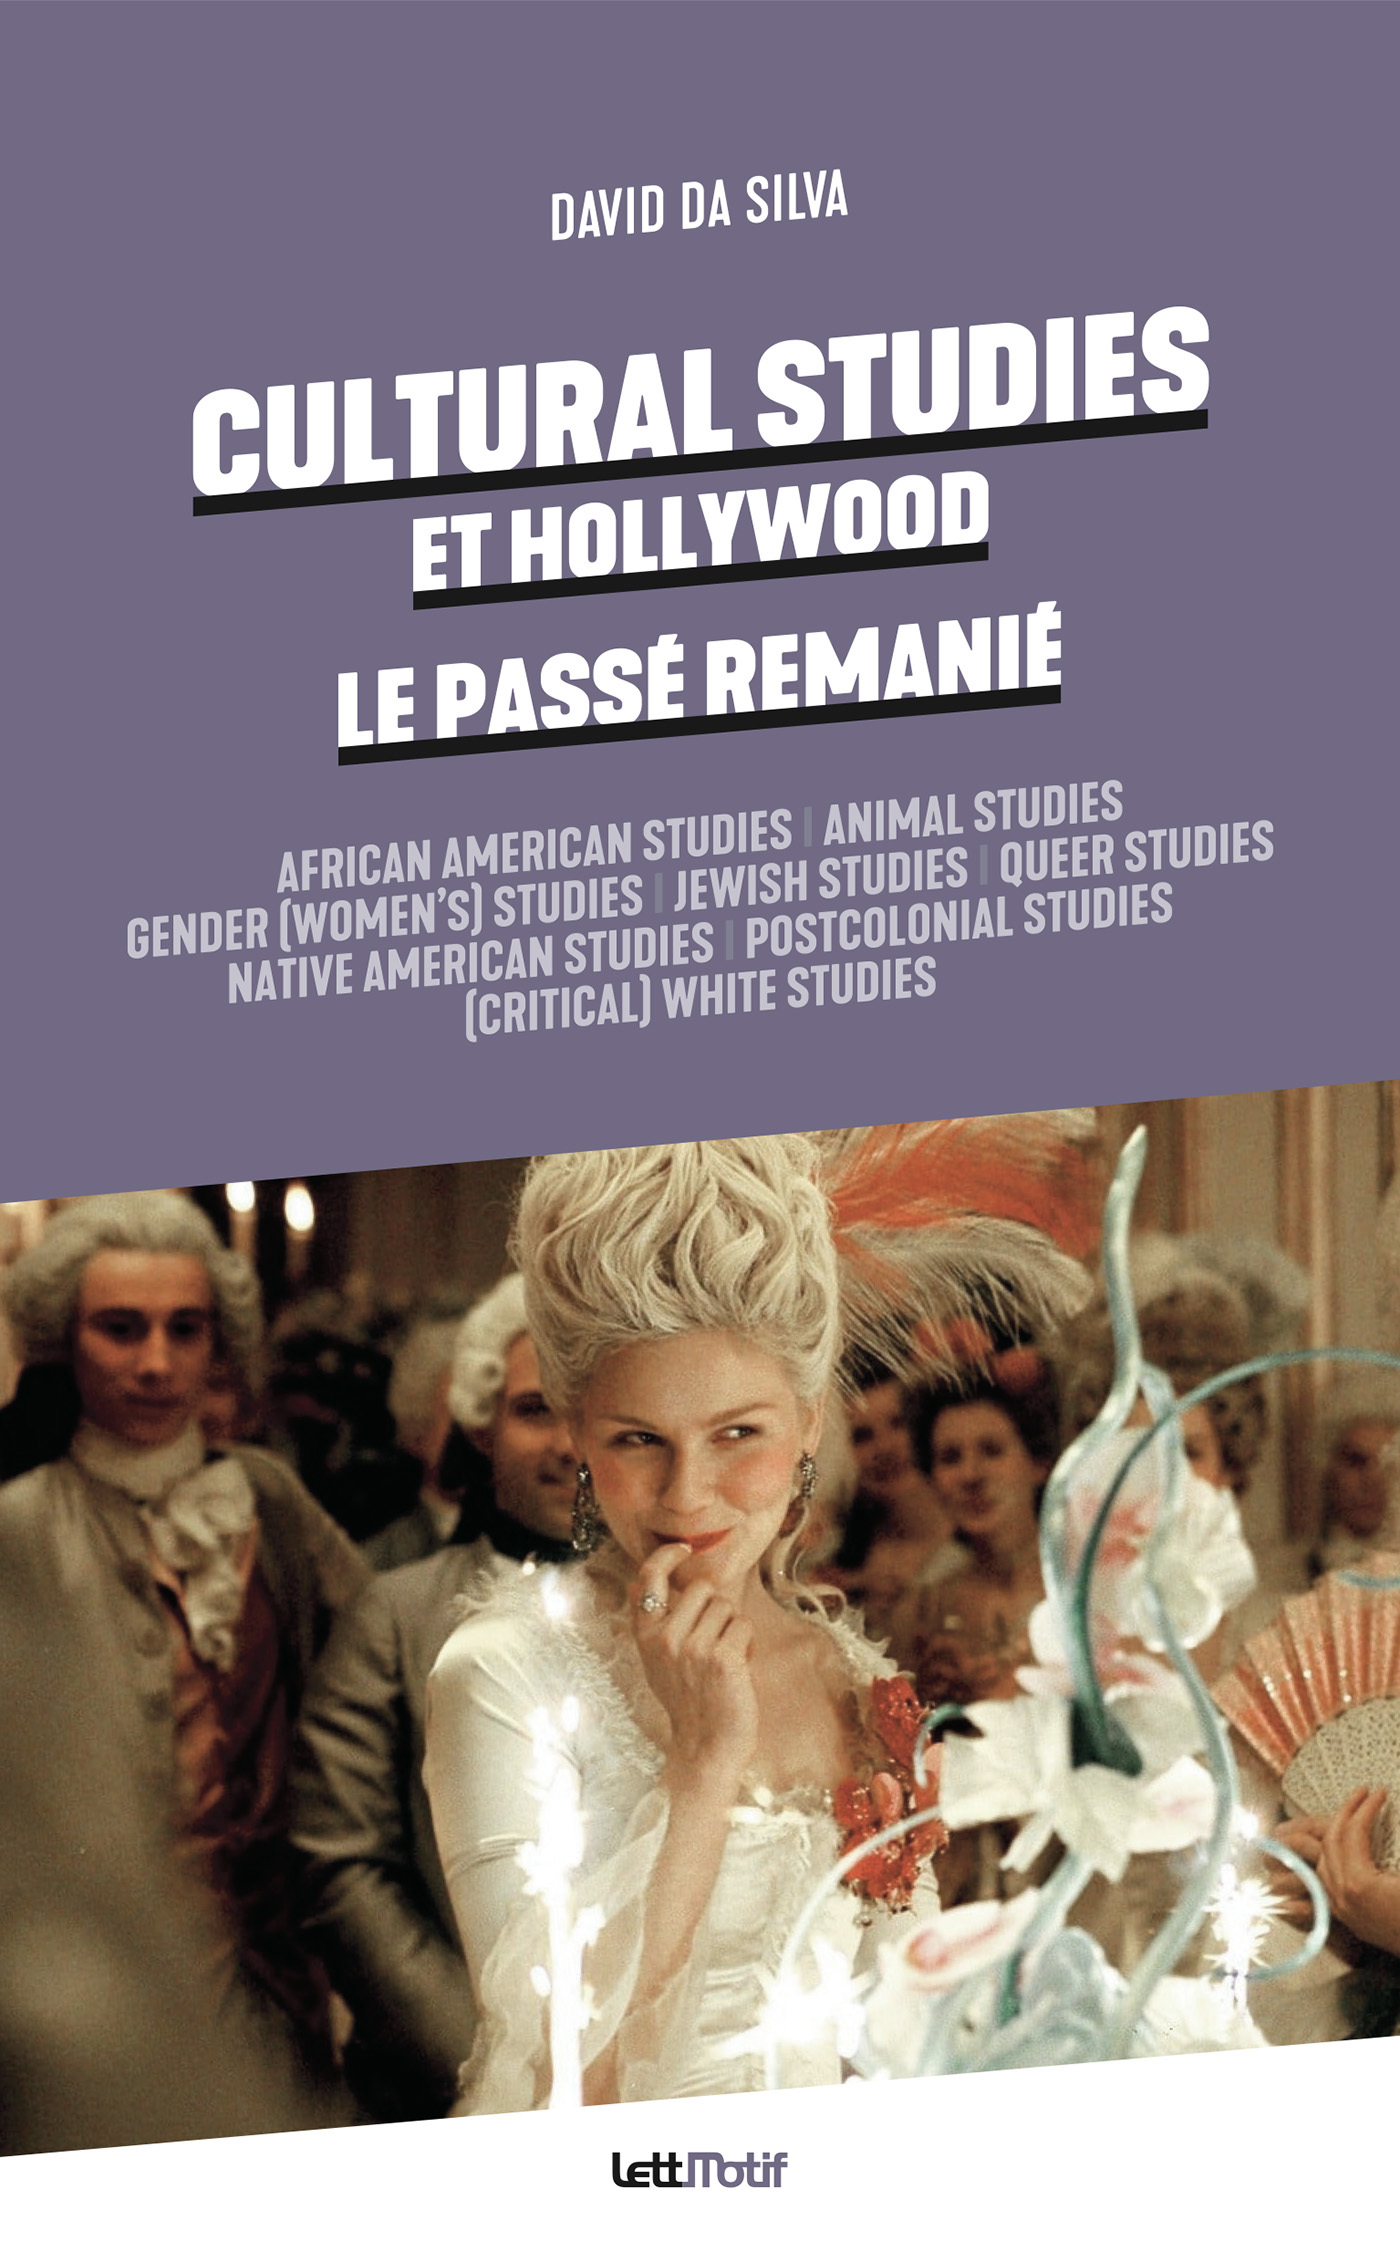 CULTURAL STUDIES ET HOLLYWOOD, LE PASSE REMANIE